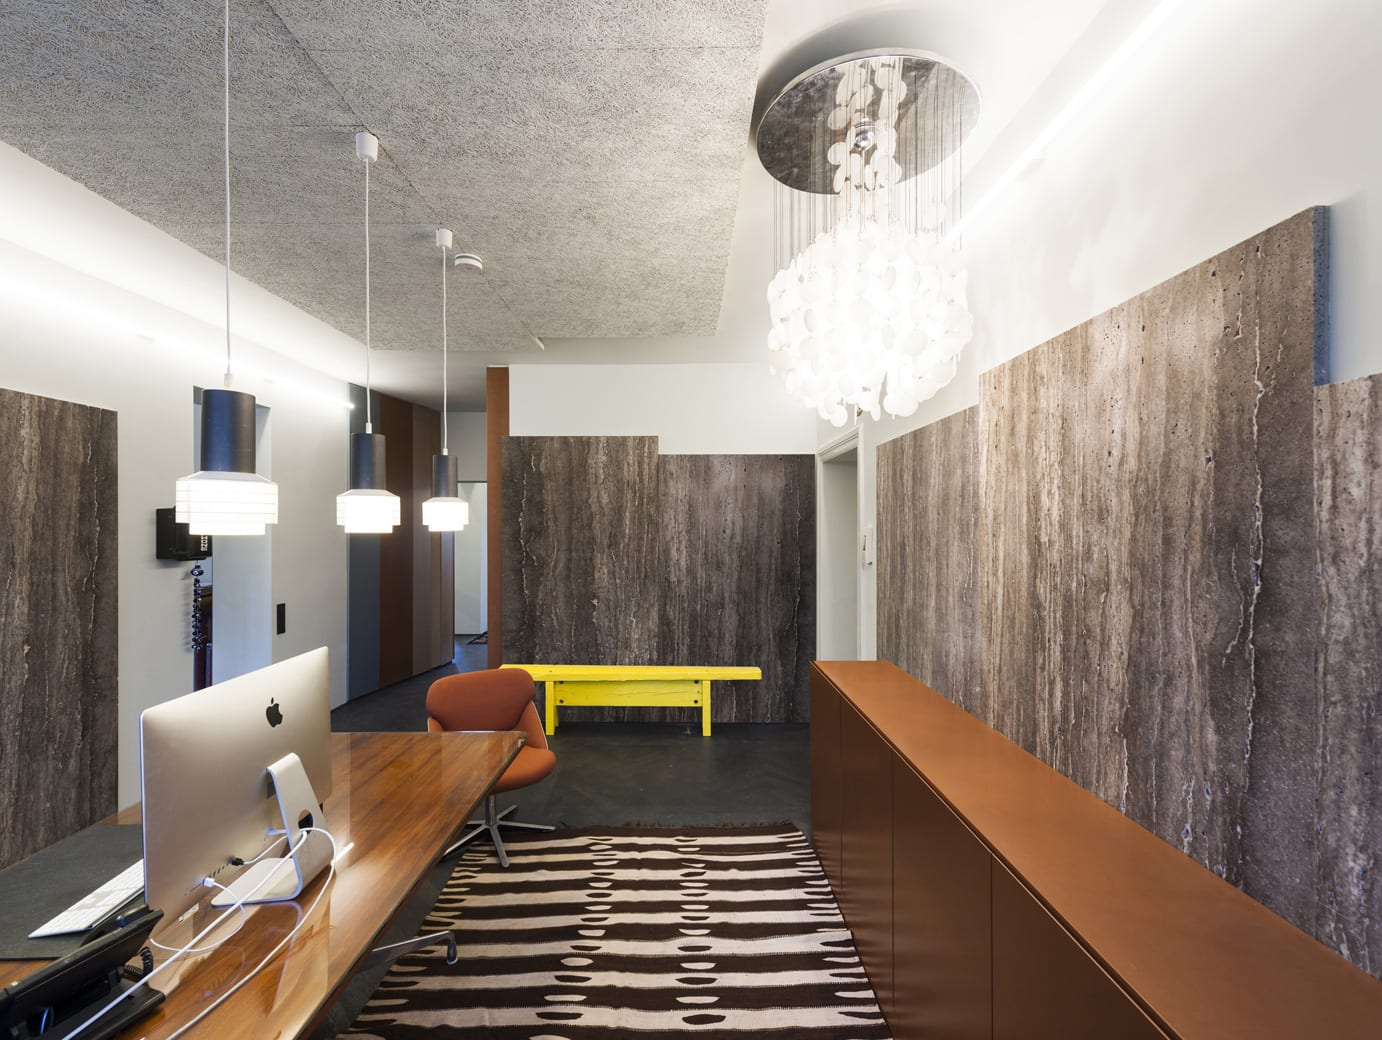 Office Strausberger Platz Berlin by Gonzalez Haase AAS | Yellowtrace